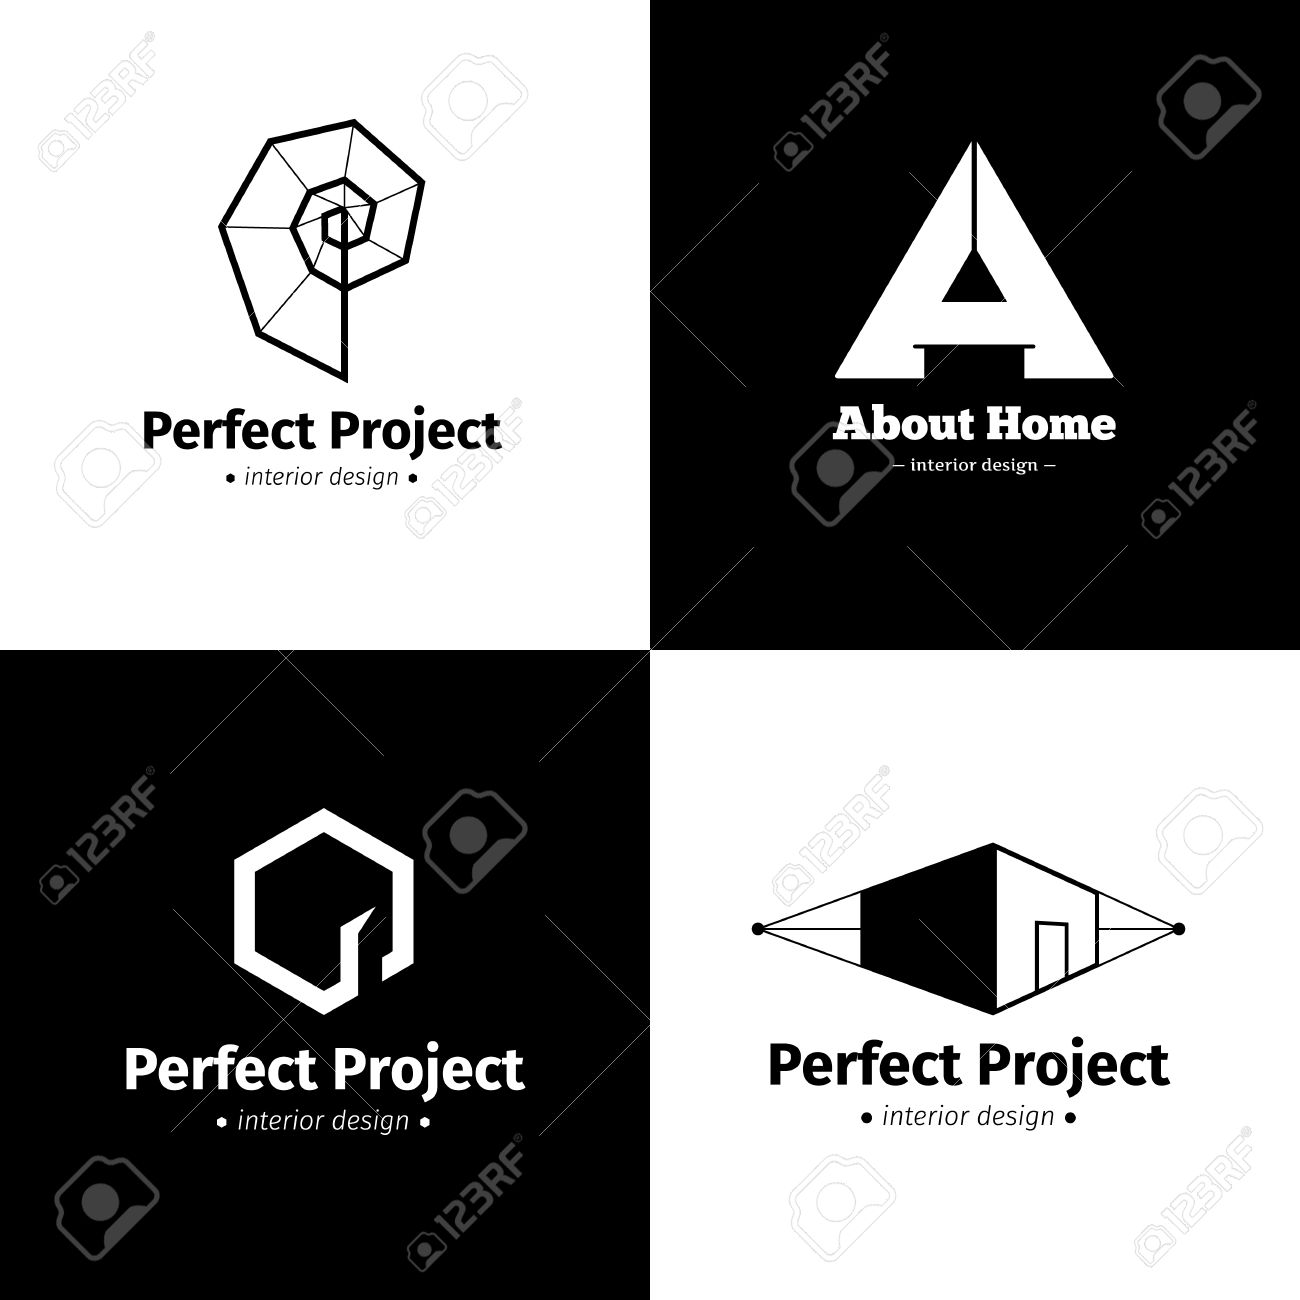 Vector Set Of Four Minimalistic Interior Design Studio Logos Black And White Creative Logotypes Stock